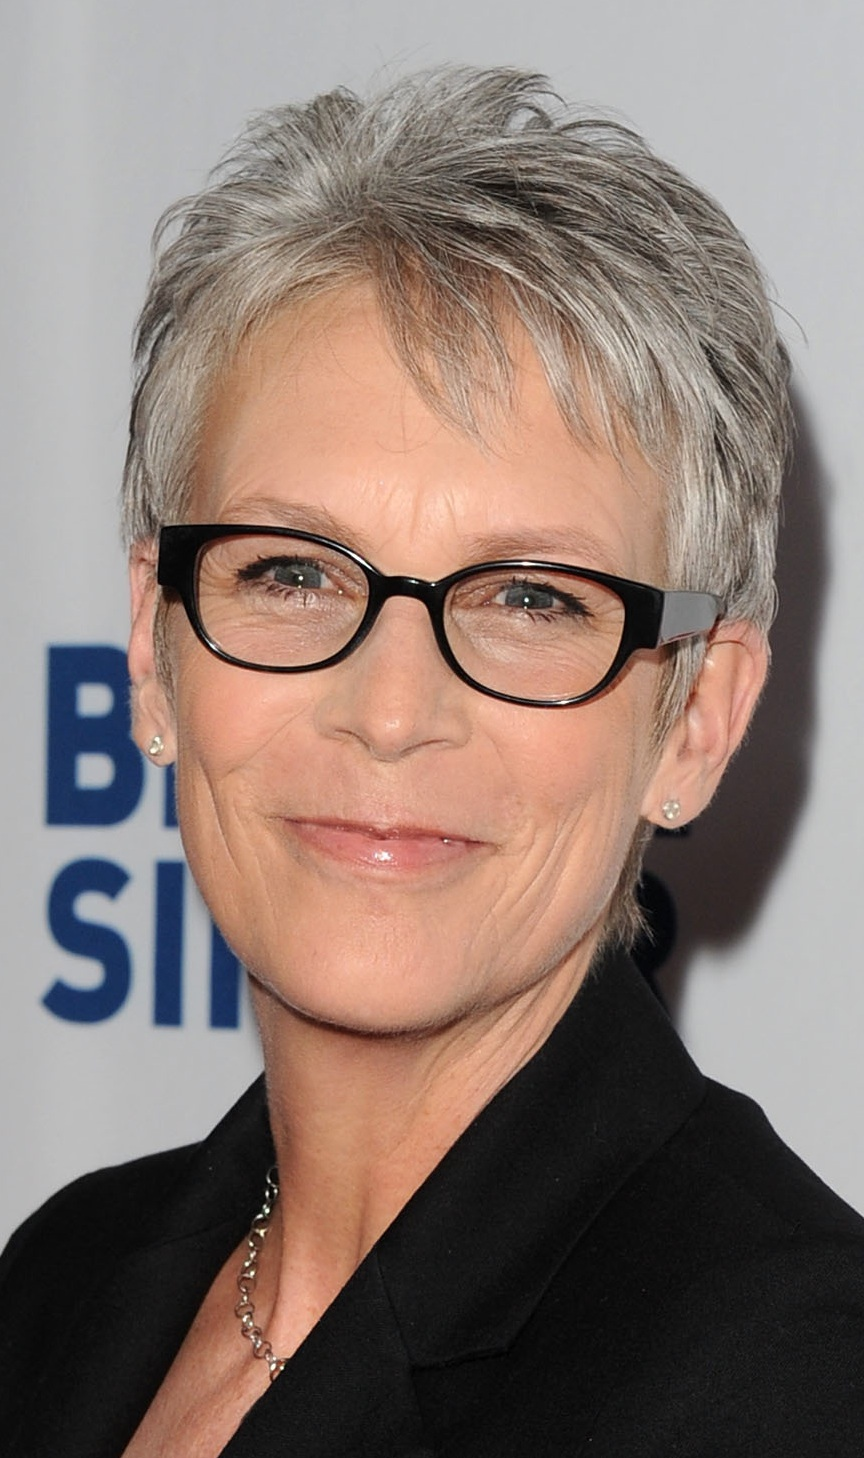 Glasses Frames For 60 Year Old Man : Jamie Lee Curtis New Girl Wiki Fandom powered by Wikia